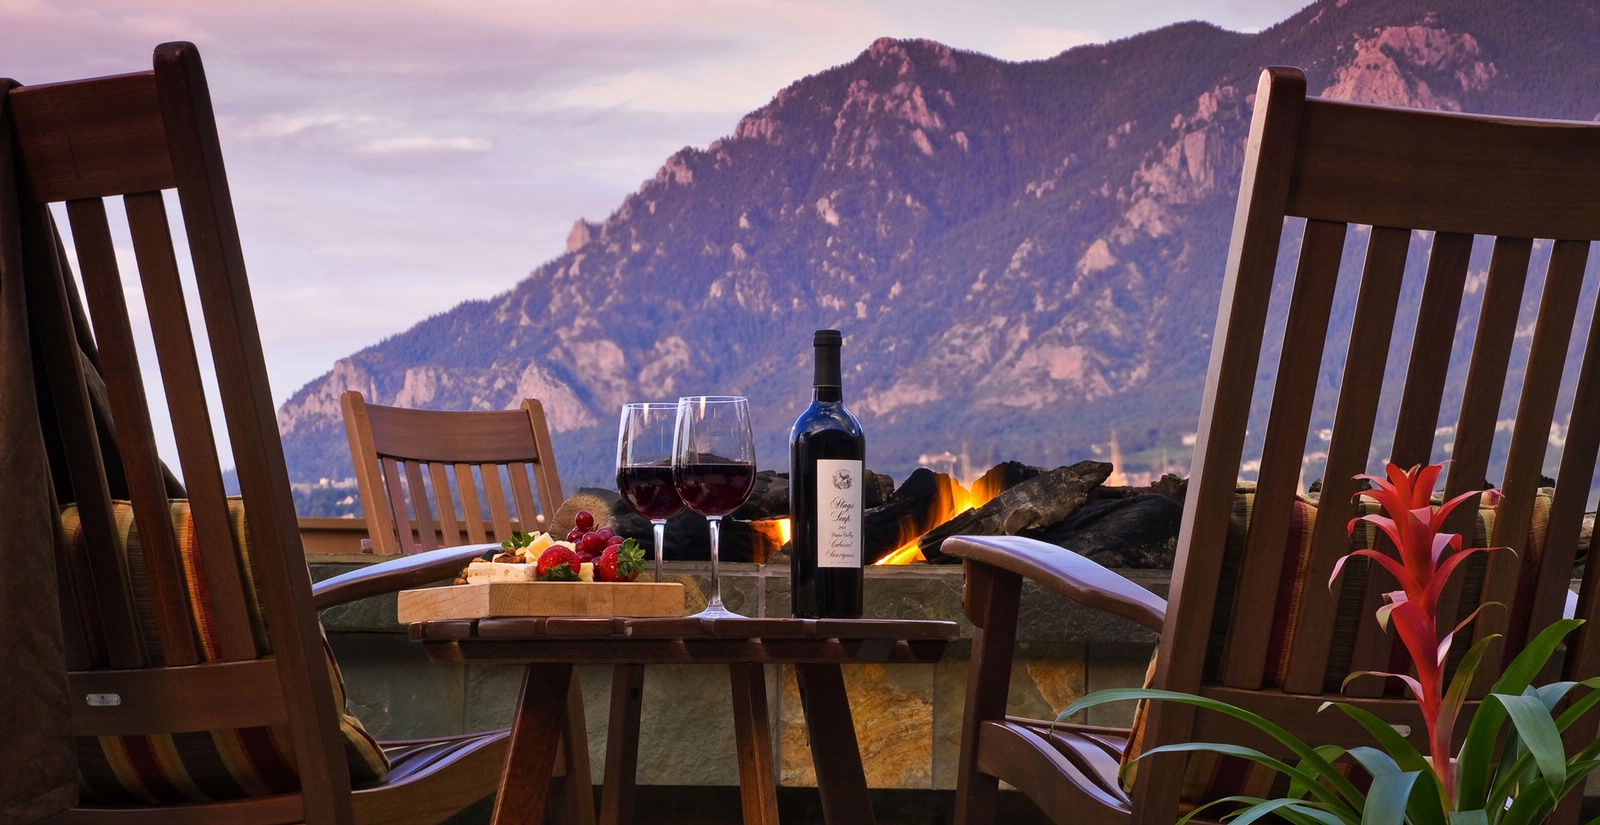 5 Spectacular Spas to Renew Spirits in Colorado Springs